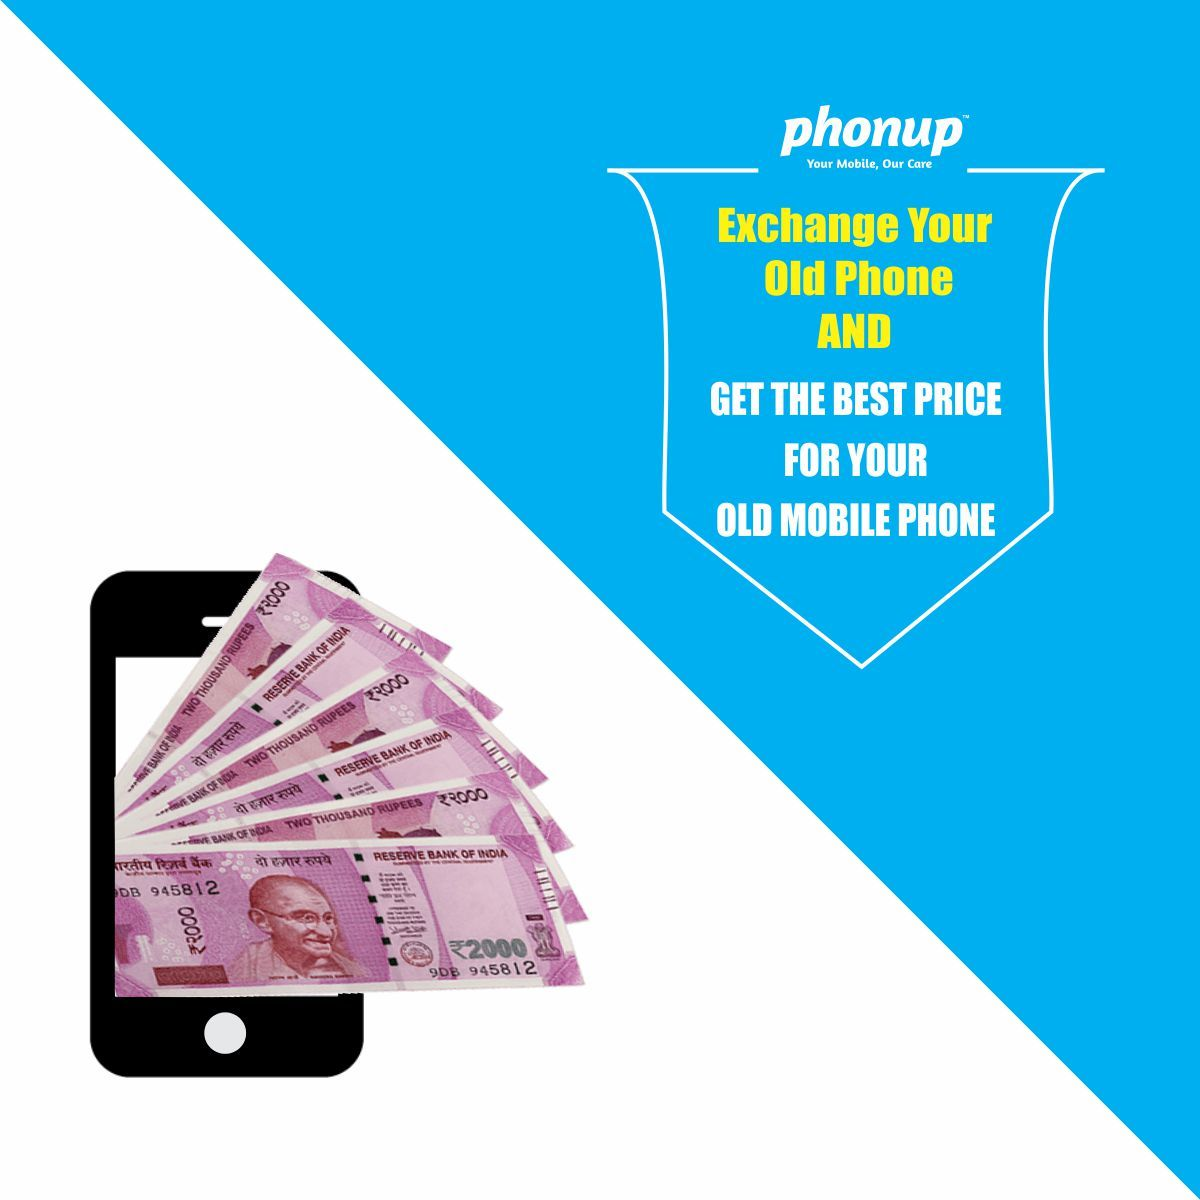 Exchange your old phone get best price for your old mobile